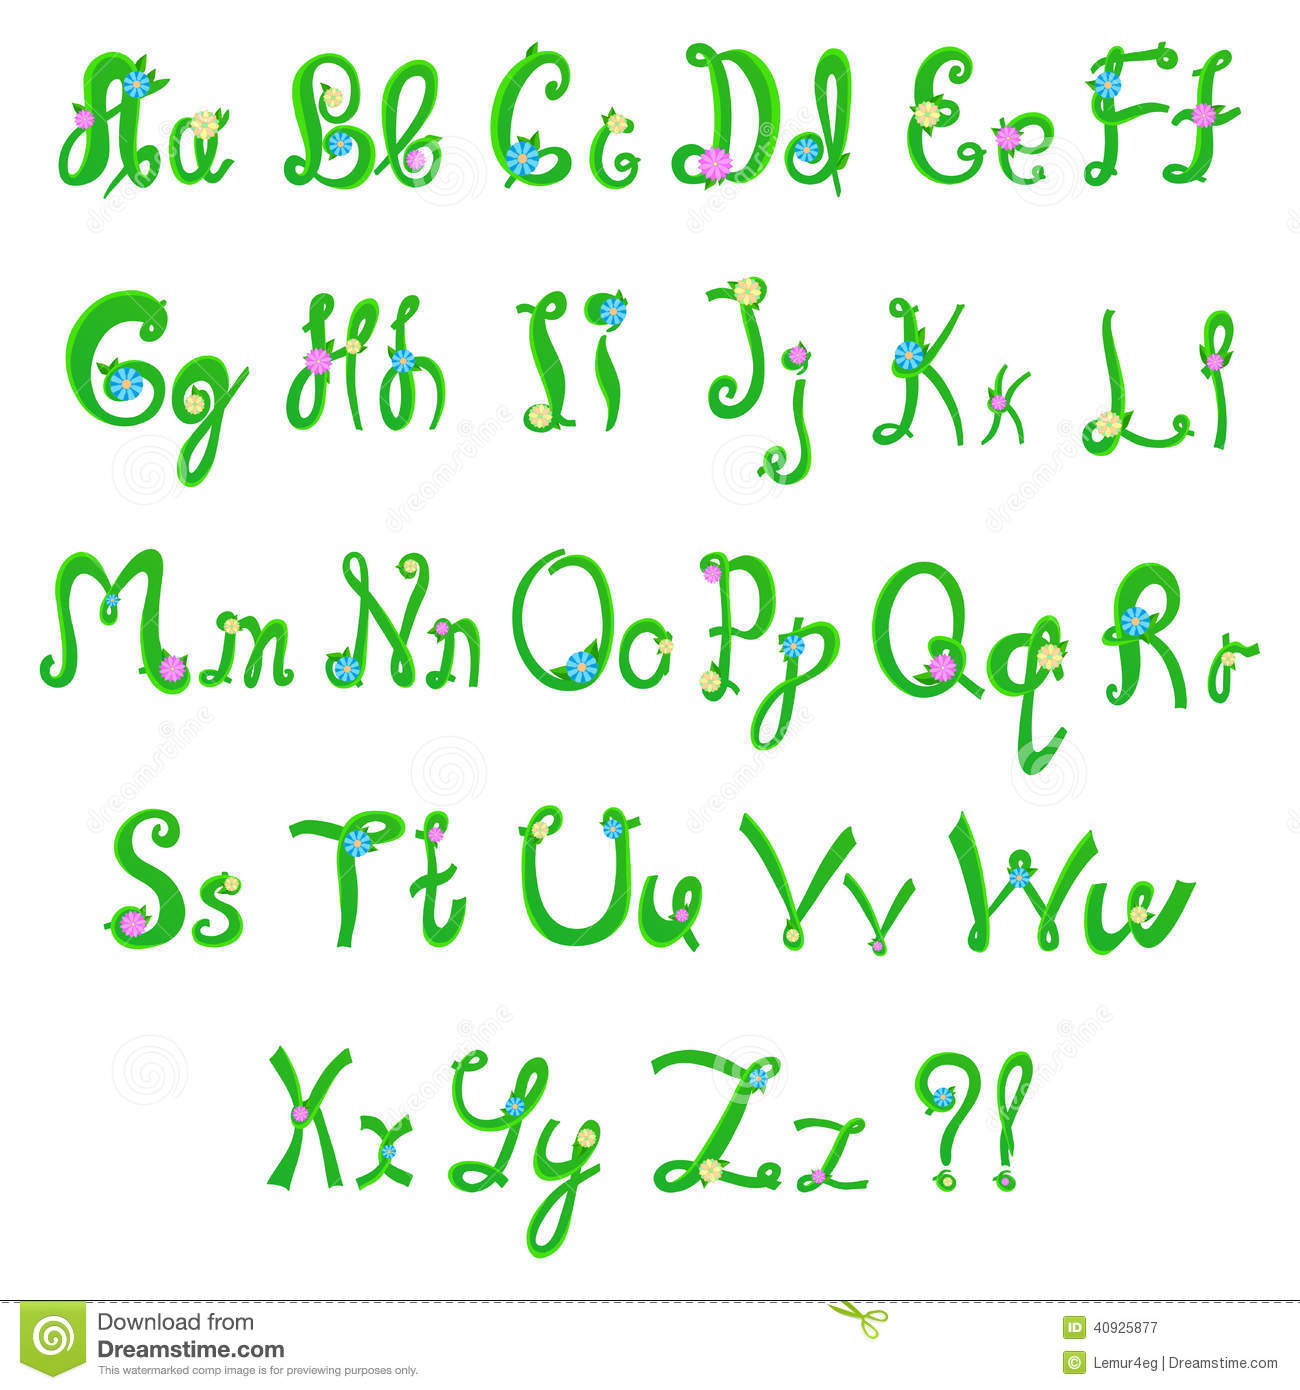 writing styles in english alphabet Find and save ideas about writing styles on pinterest | see more ideas about writing styles fonts, calligraphy writing styles and calligraphy letters old english style letters these old english style letters are from art alphabets and lettering by j.